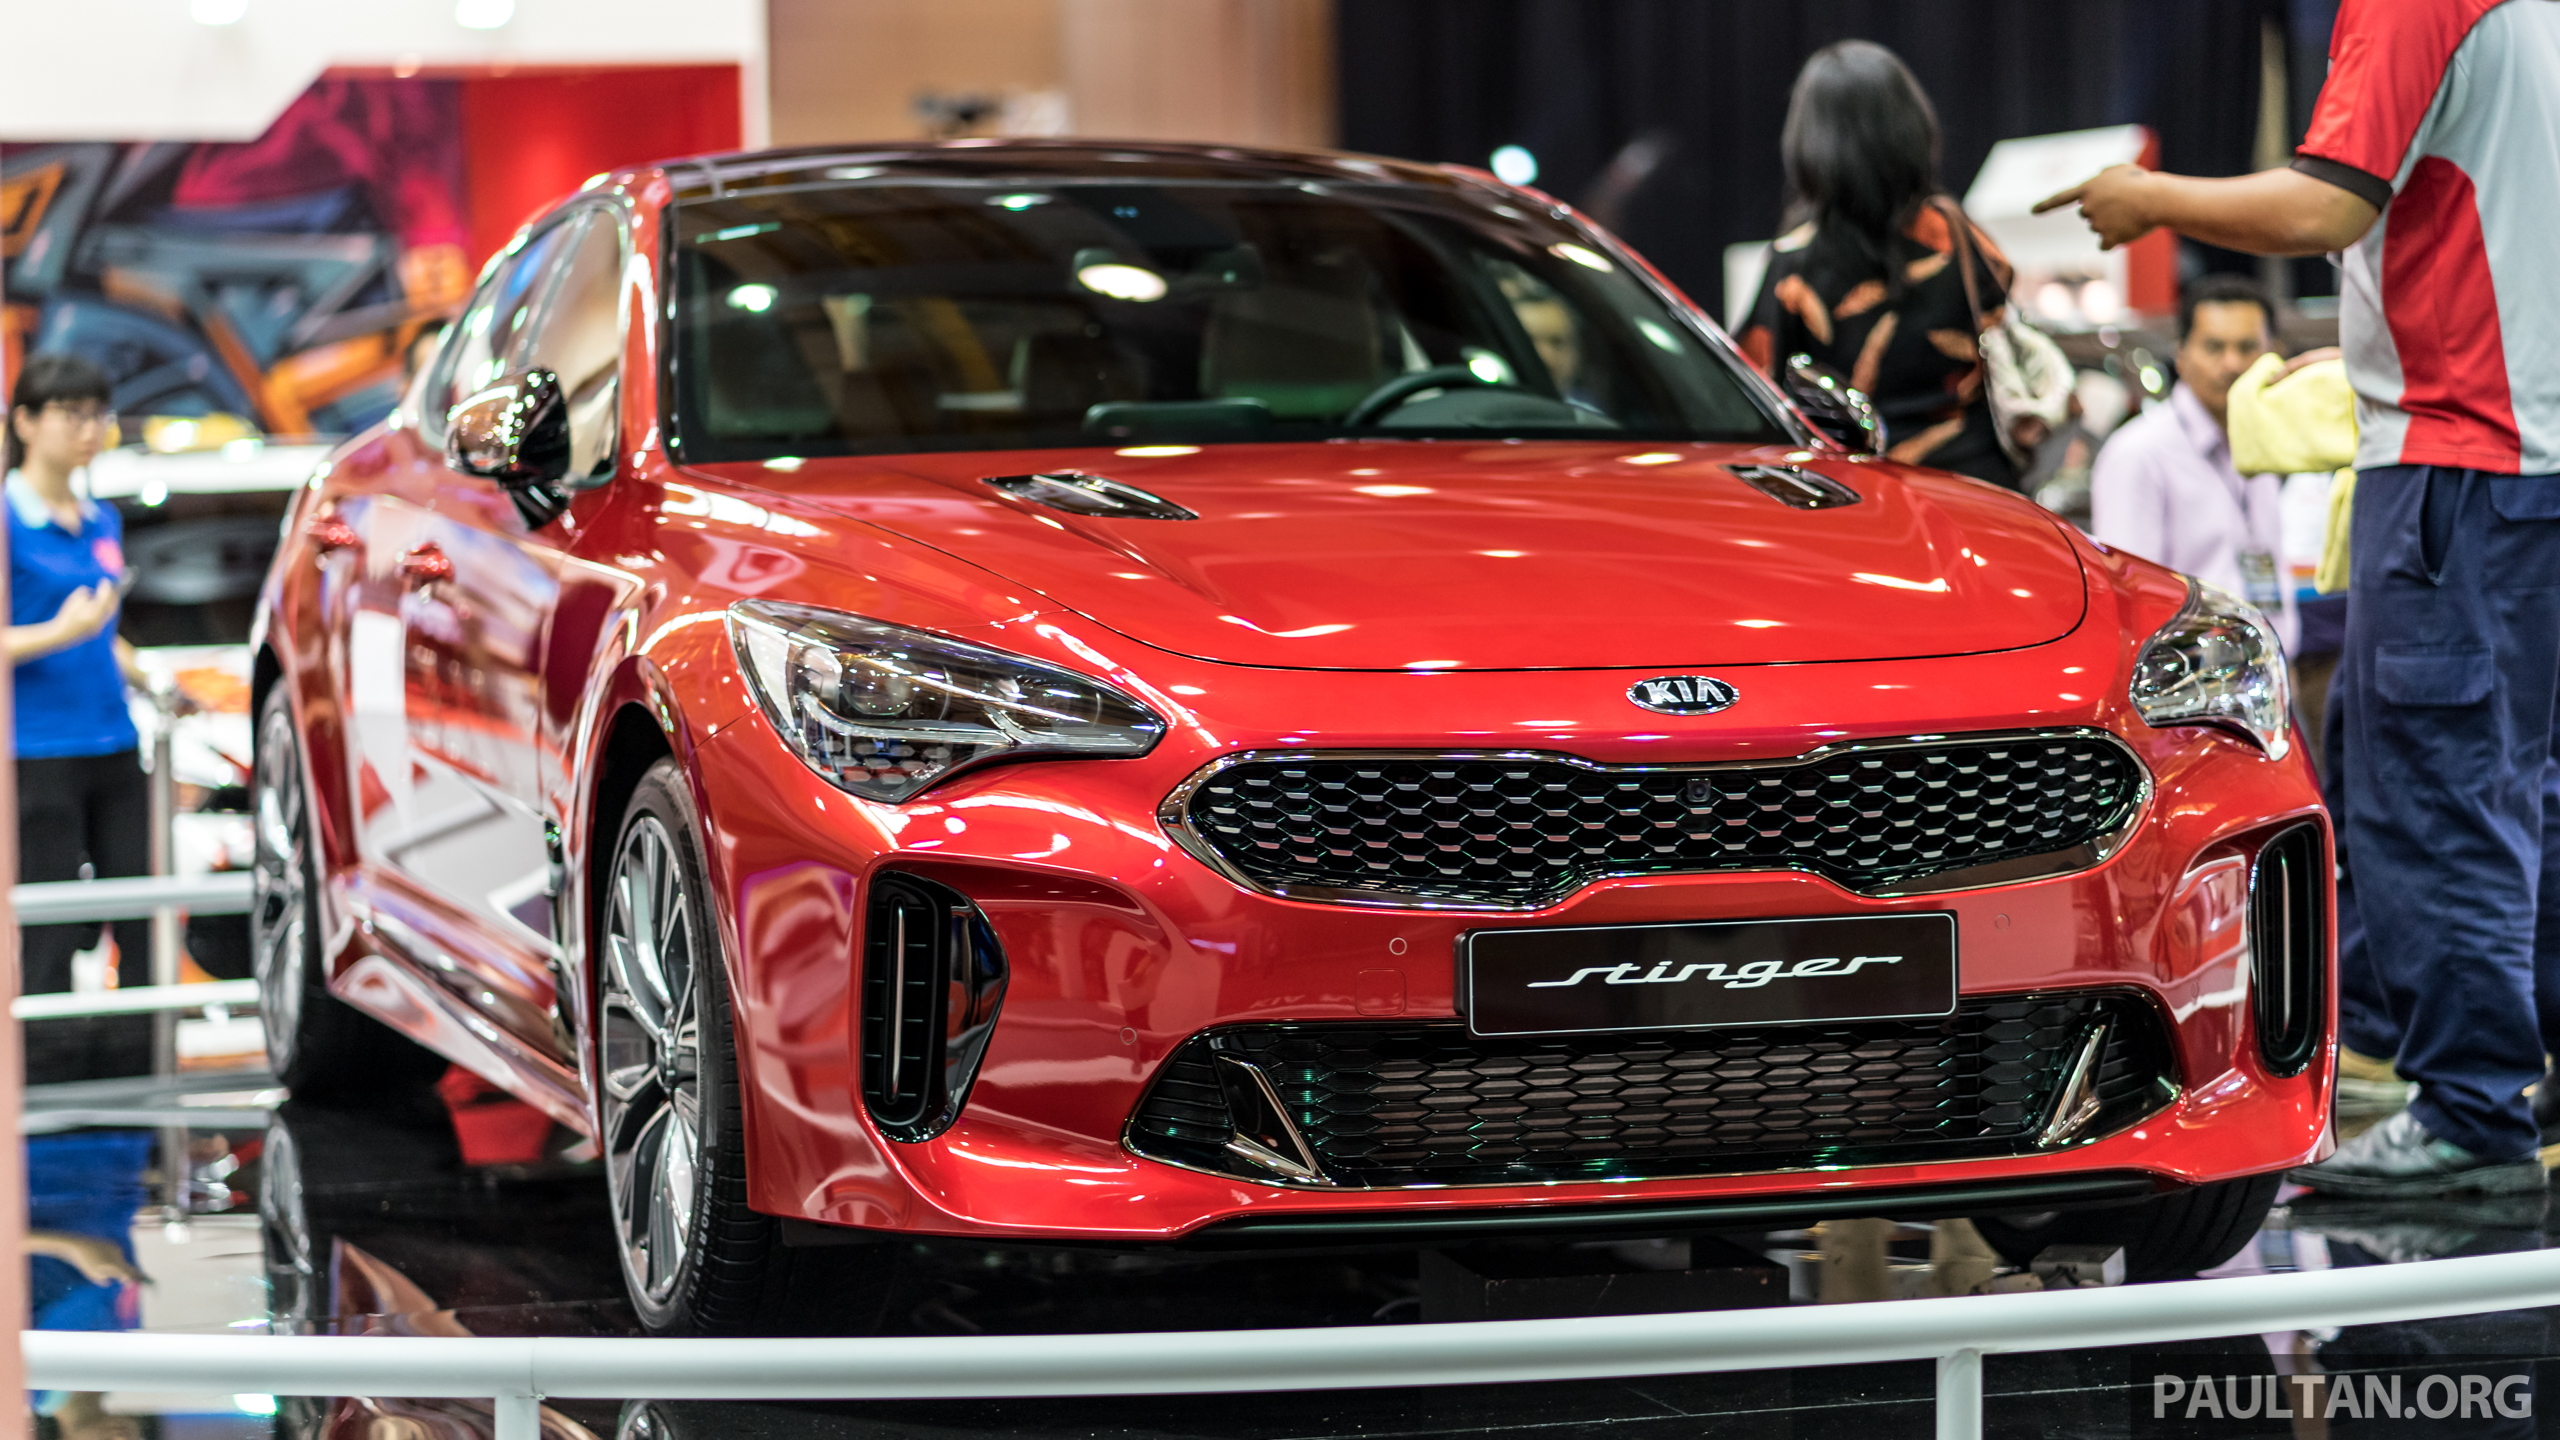 kia stinger gt 3 3l turbo v6 previewed in malaysia paul tan image 735129. Black Bedroom Furniture Sets. Home Design Ideas